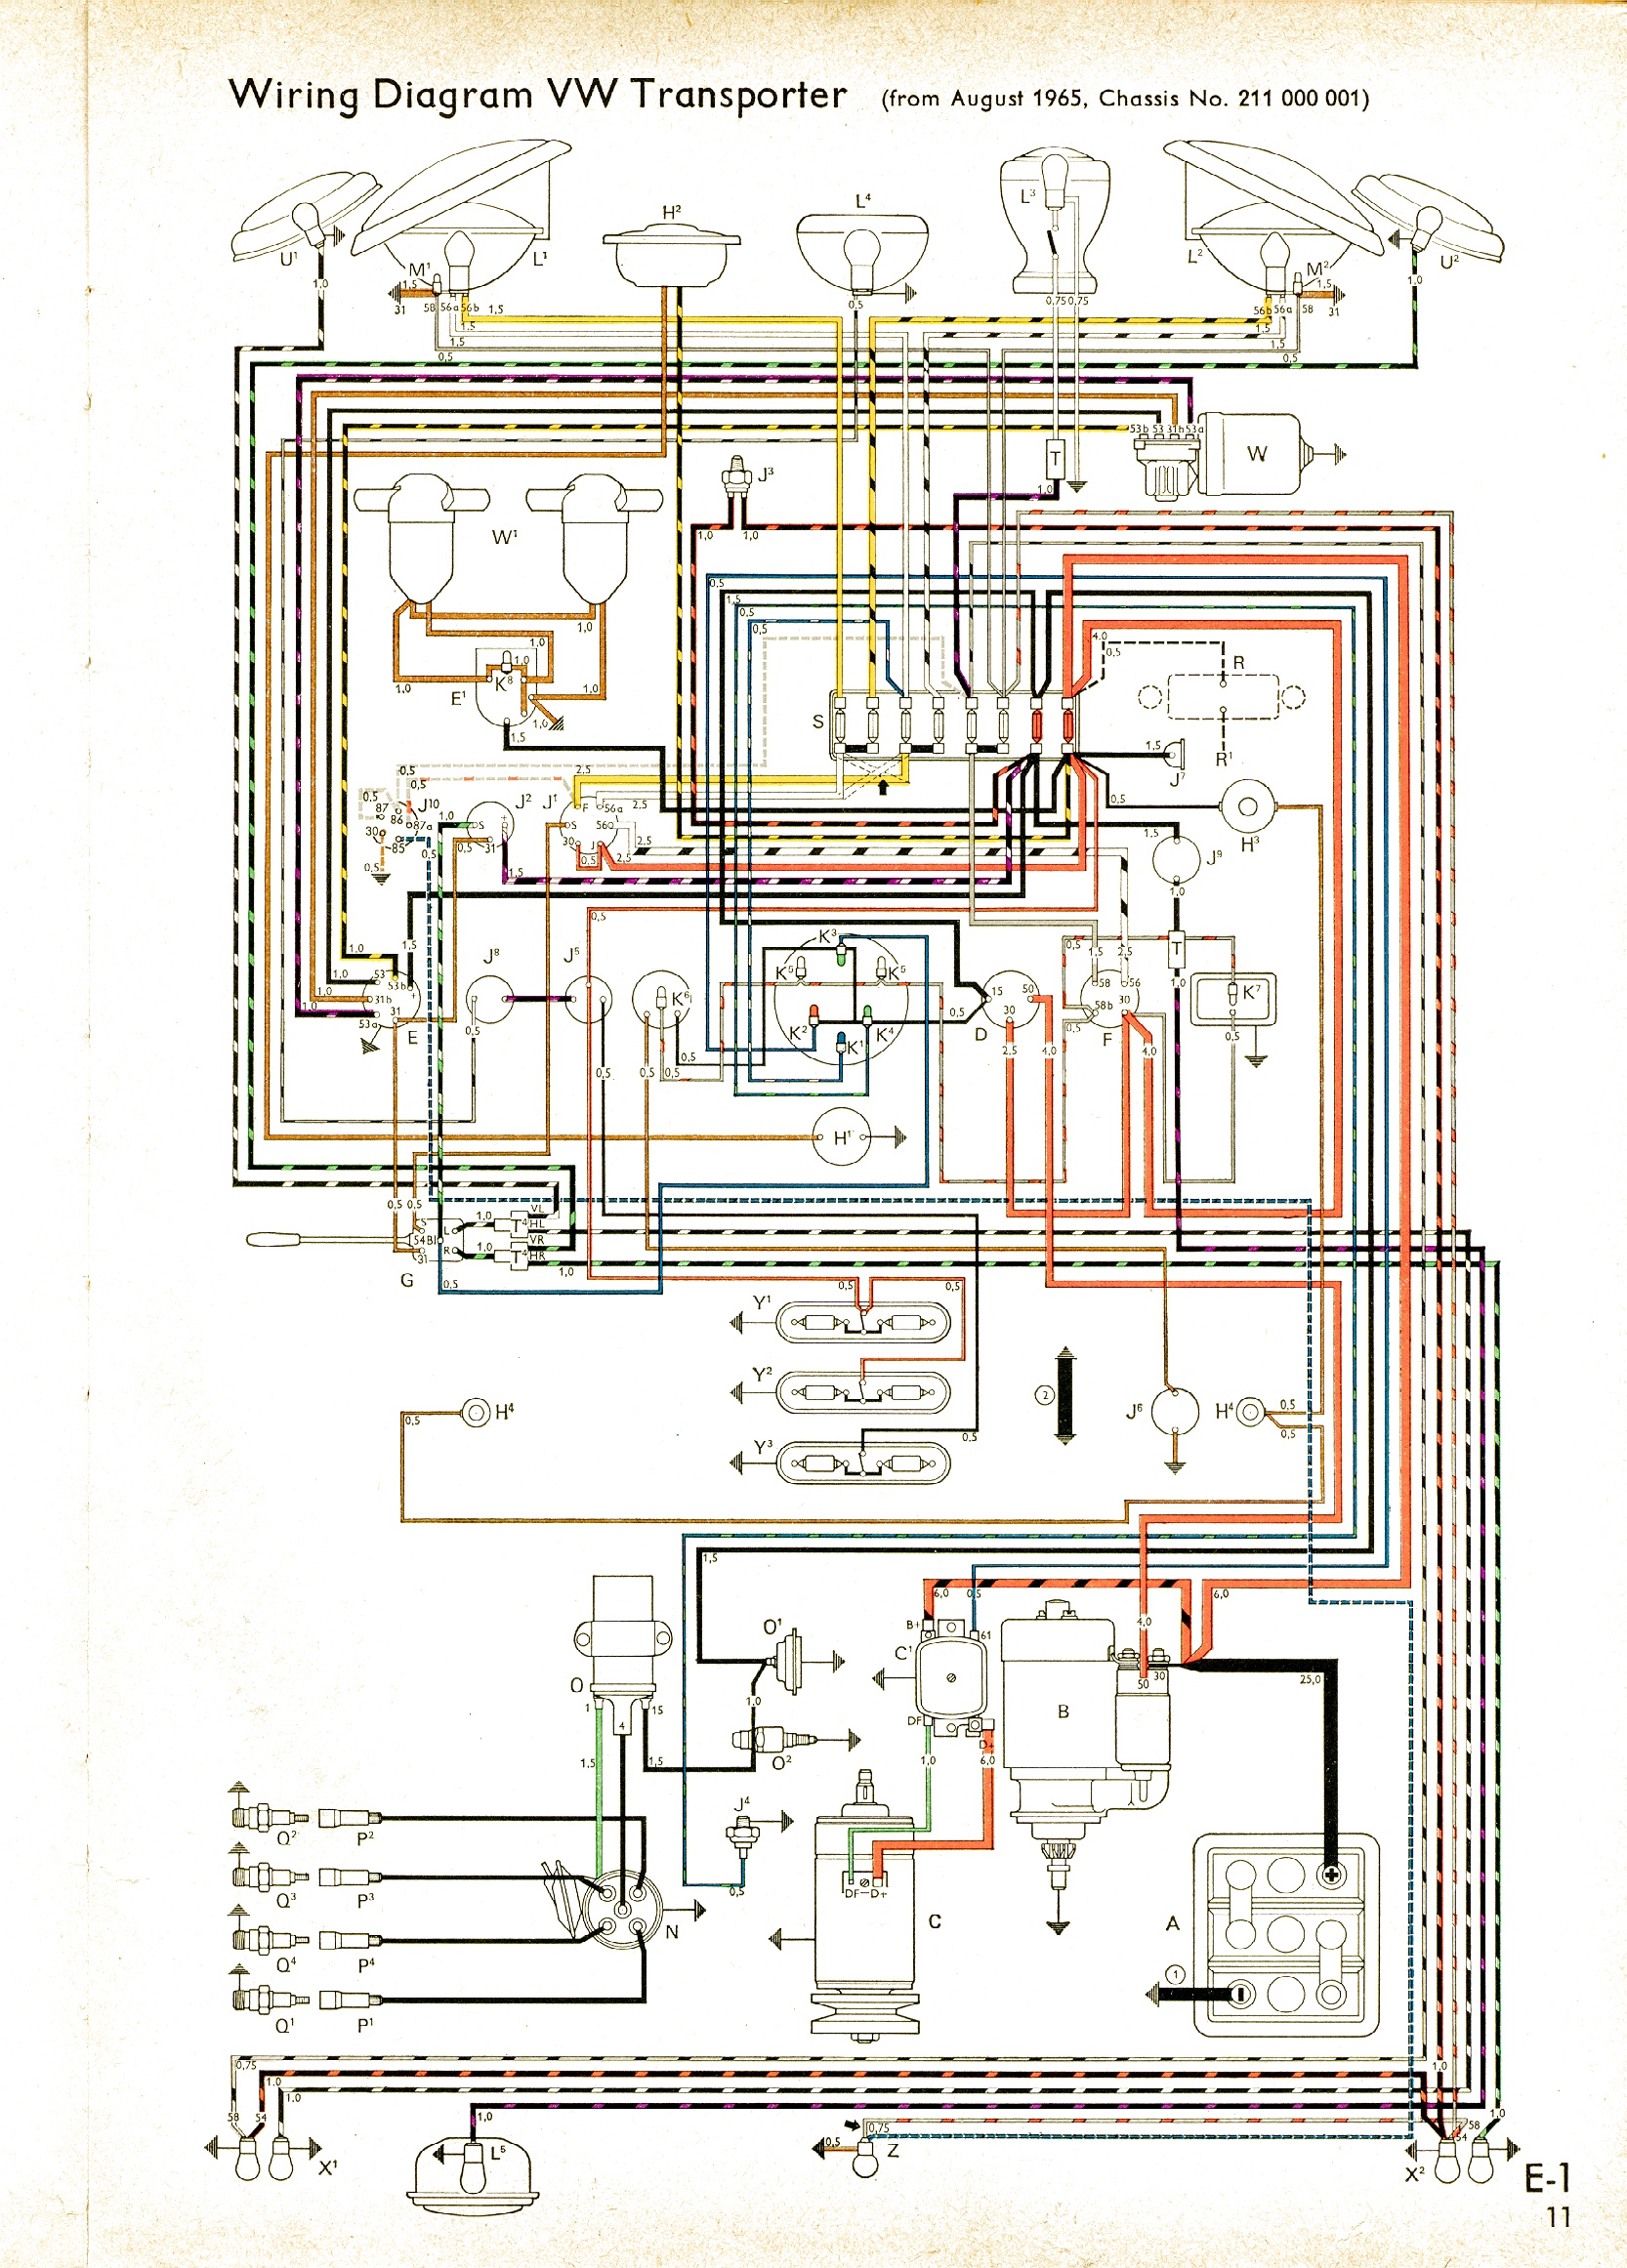 Surprising Vw Type 2 Wiring Diagram Wiring Library Wiring Cloud Funidienstapotheekhoekschewaardnl